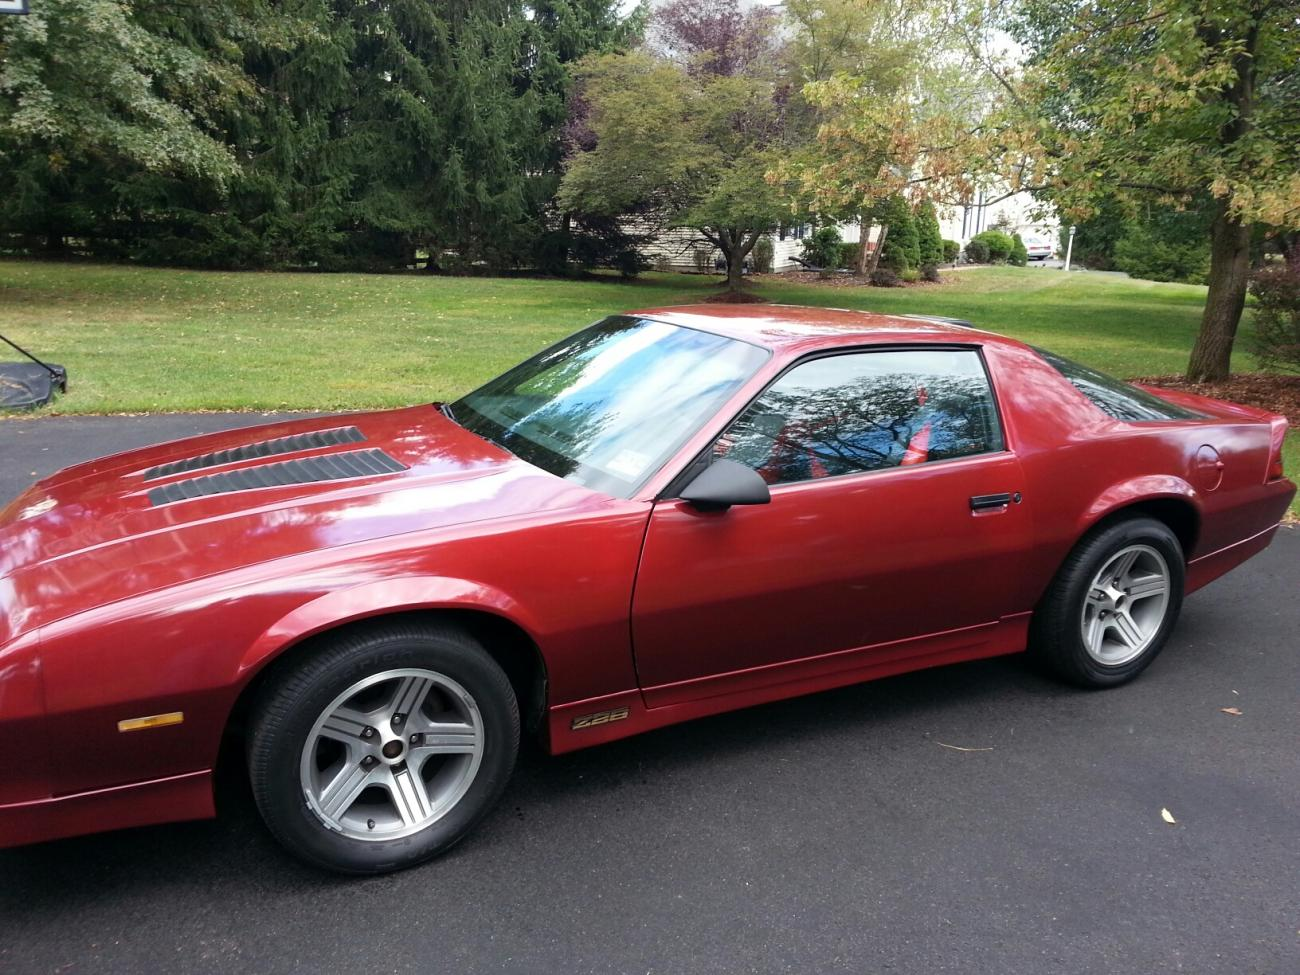 1986 camaro iroc z28 for sale camaro5 chevy camaro forum. Black Bedroom Furniture Sets. Home Design Ideas